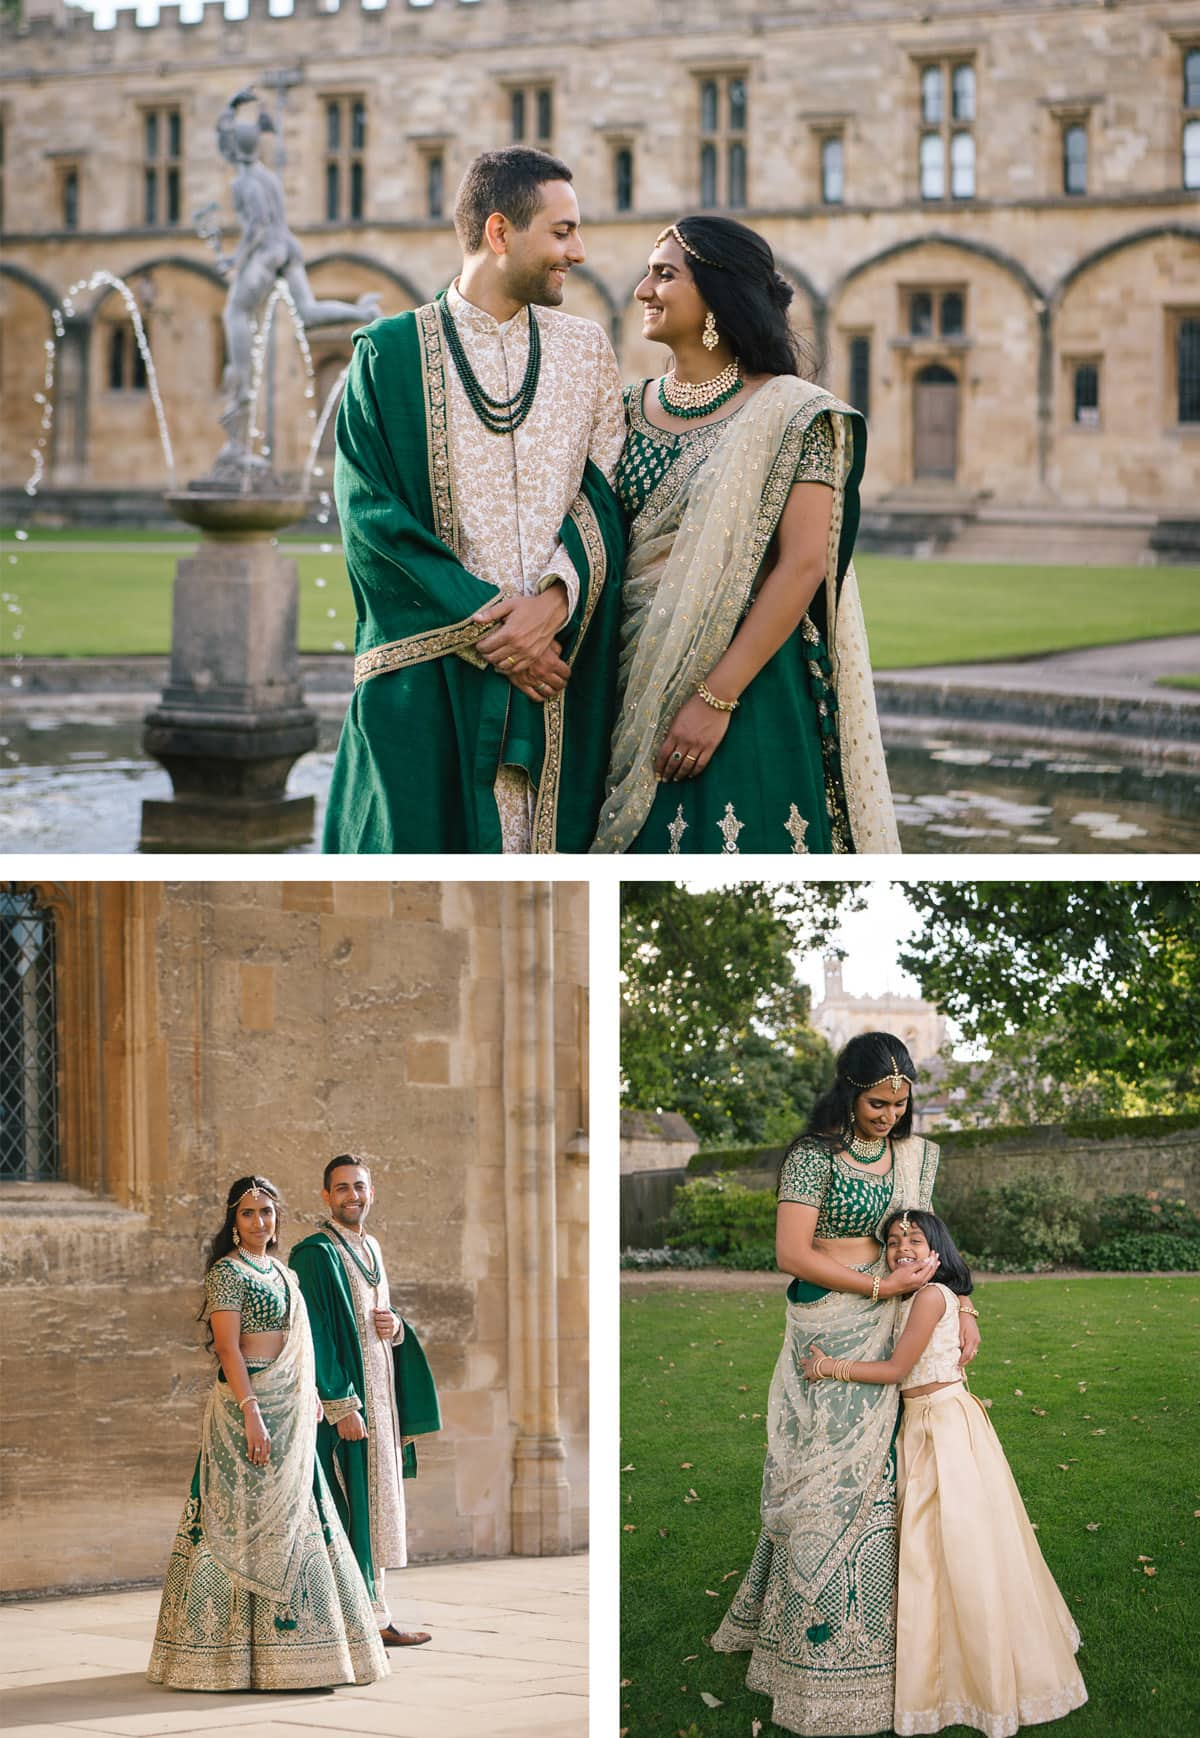 Bride and groom portrait shots at Indian wedding Christchurch college Oxford